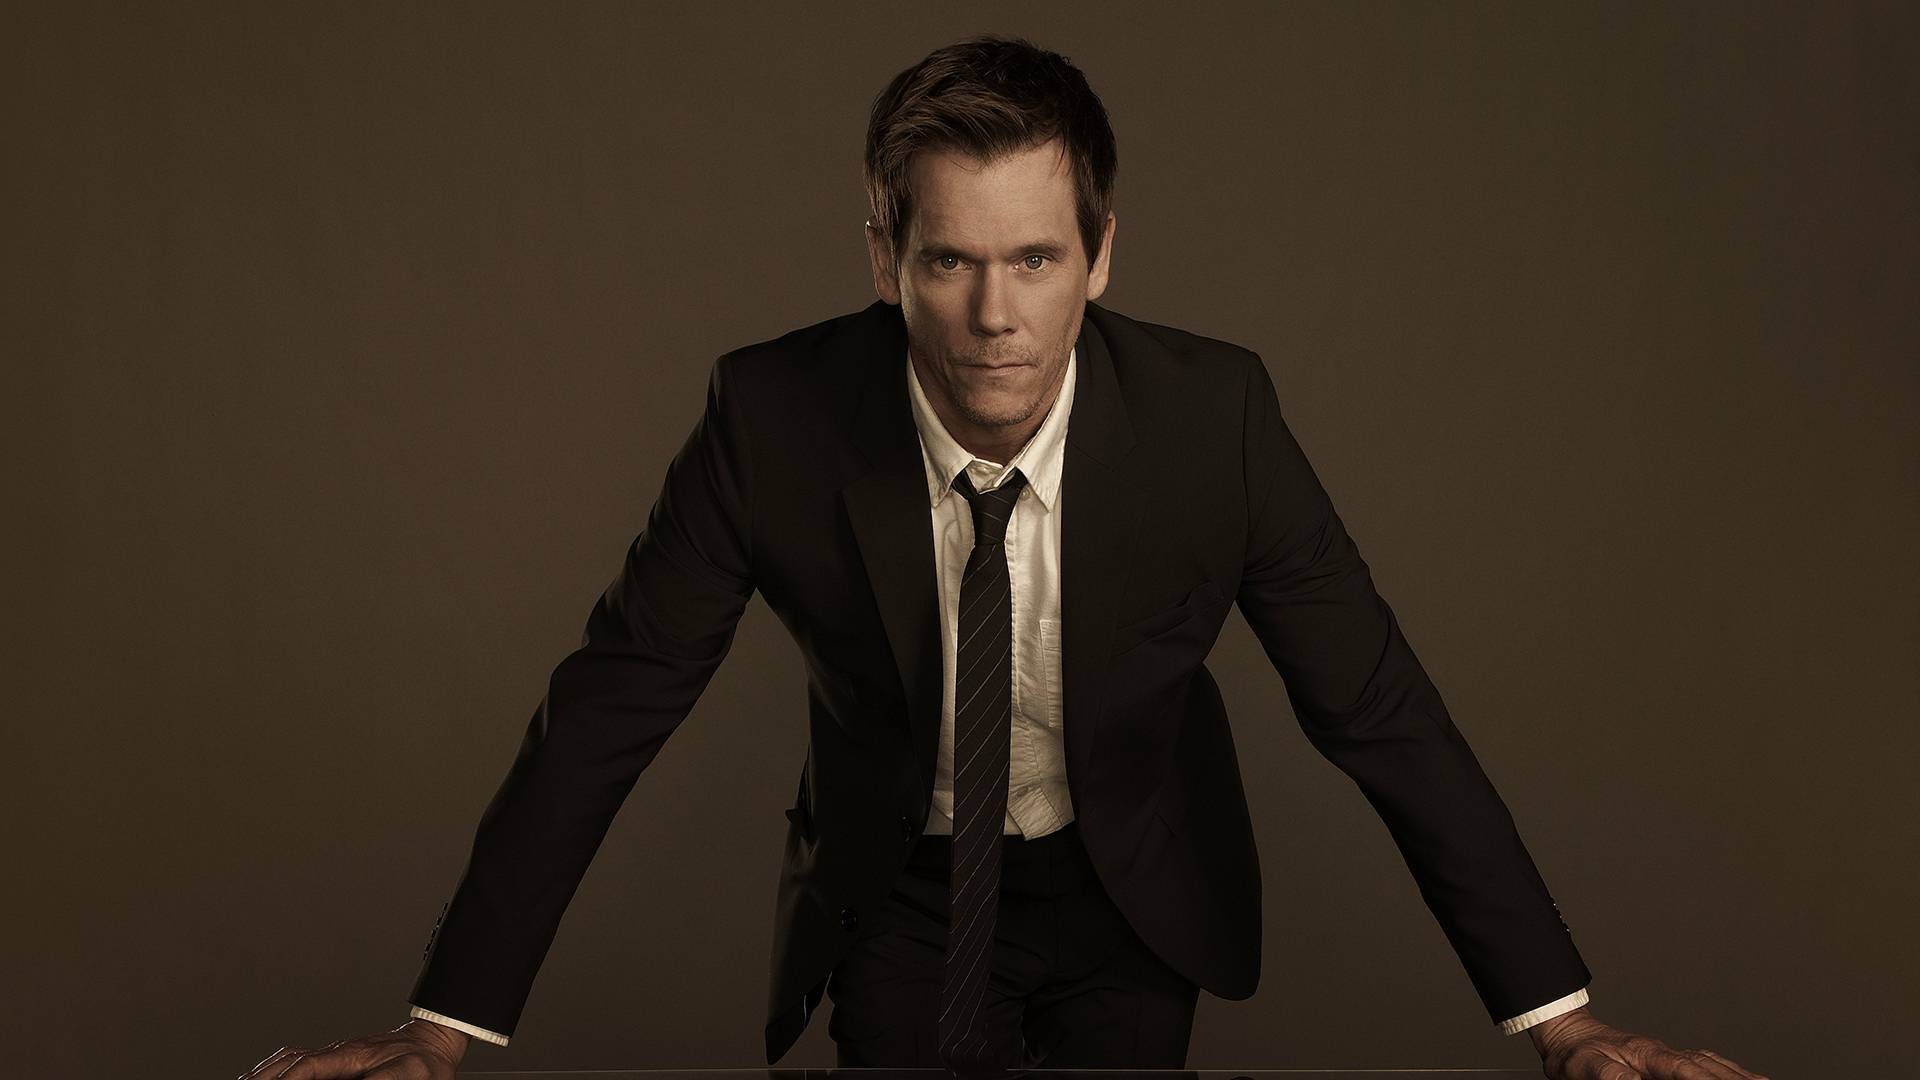 Movie The Following Kevin Bacon Wallpaper 1920x1080   Cool 1920x1080